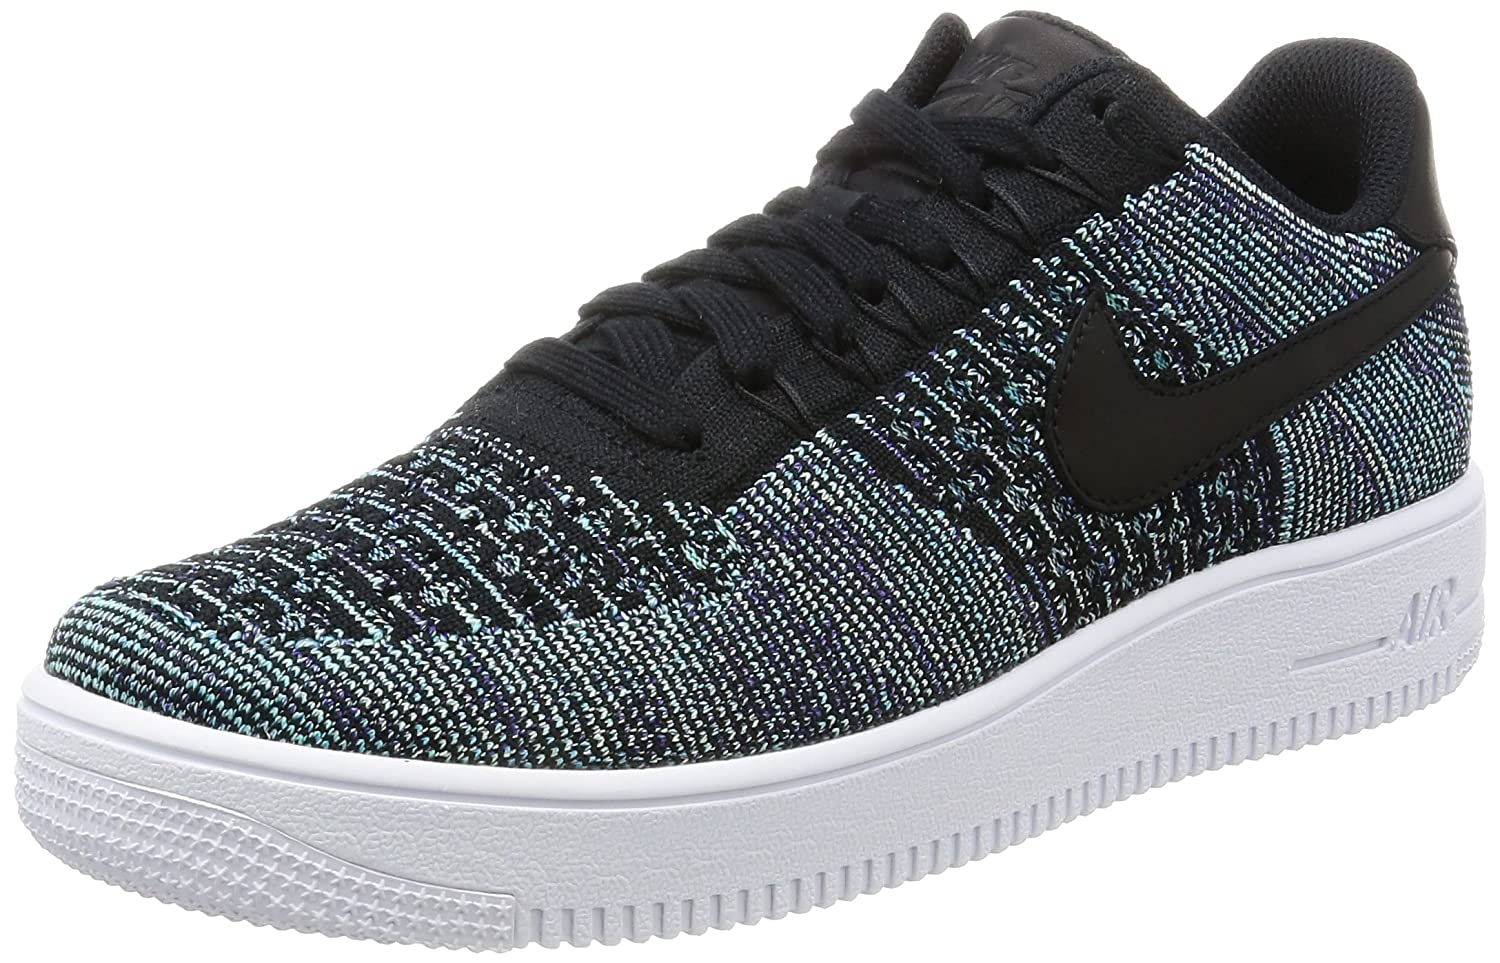 info for 265e0 0a68b Amazon.com | Nike Men's AF1 Ultra Flyknit Low QS, Vapor ...